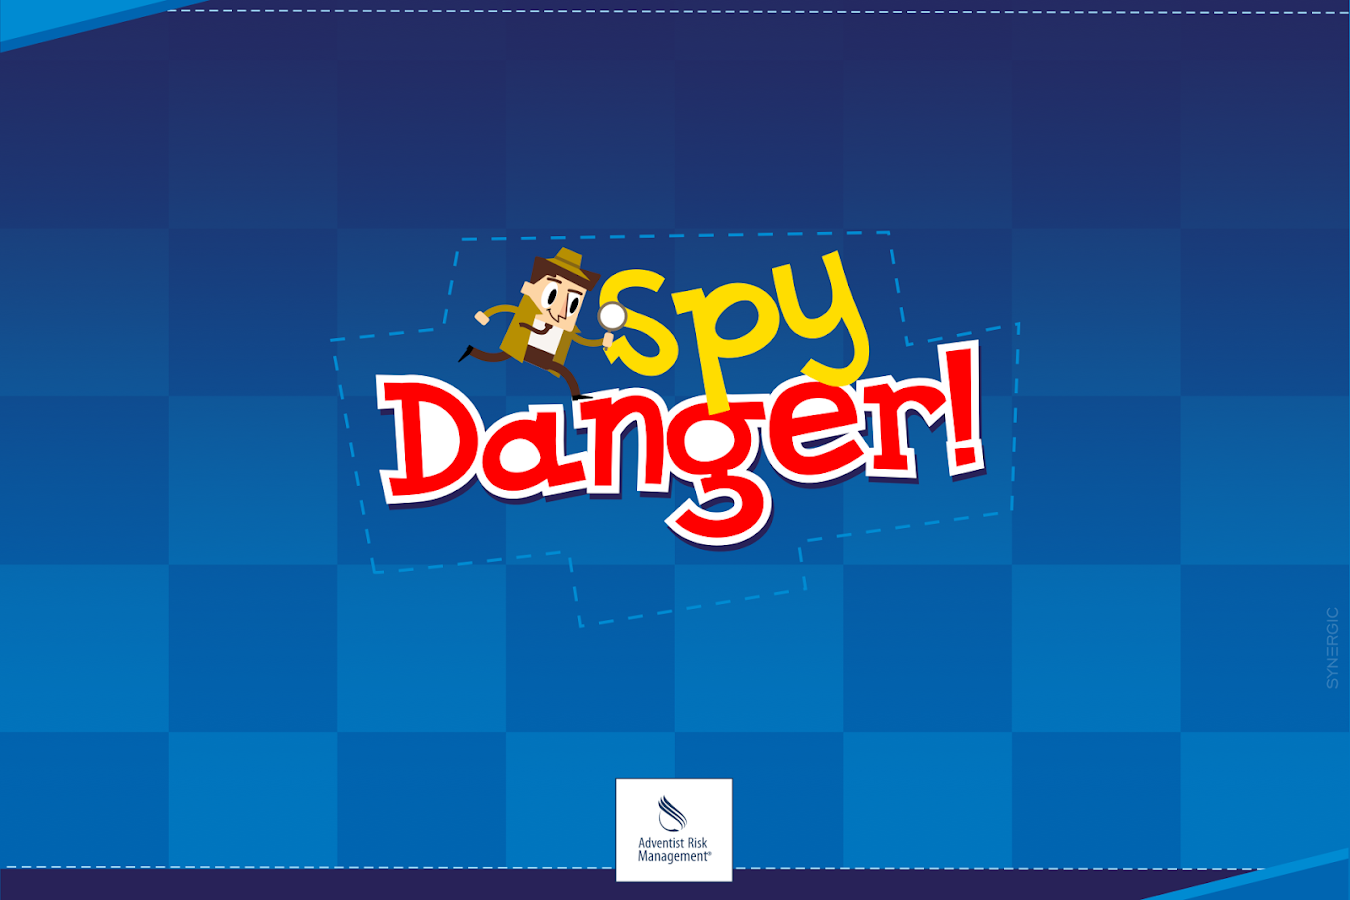 Spy Danger: captura de tela